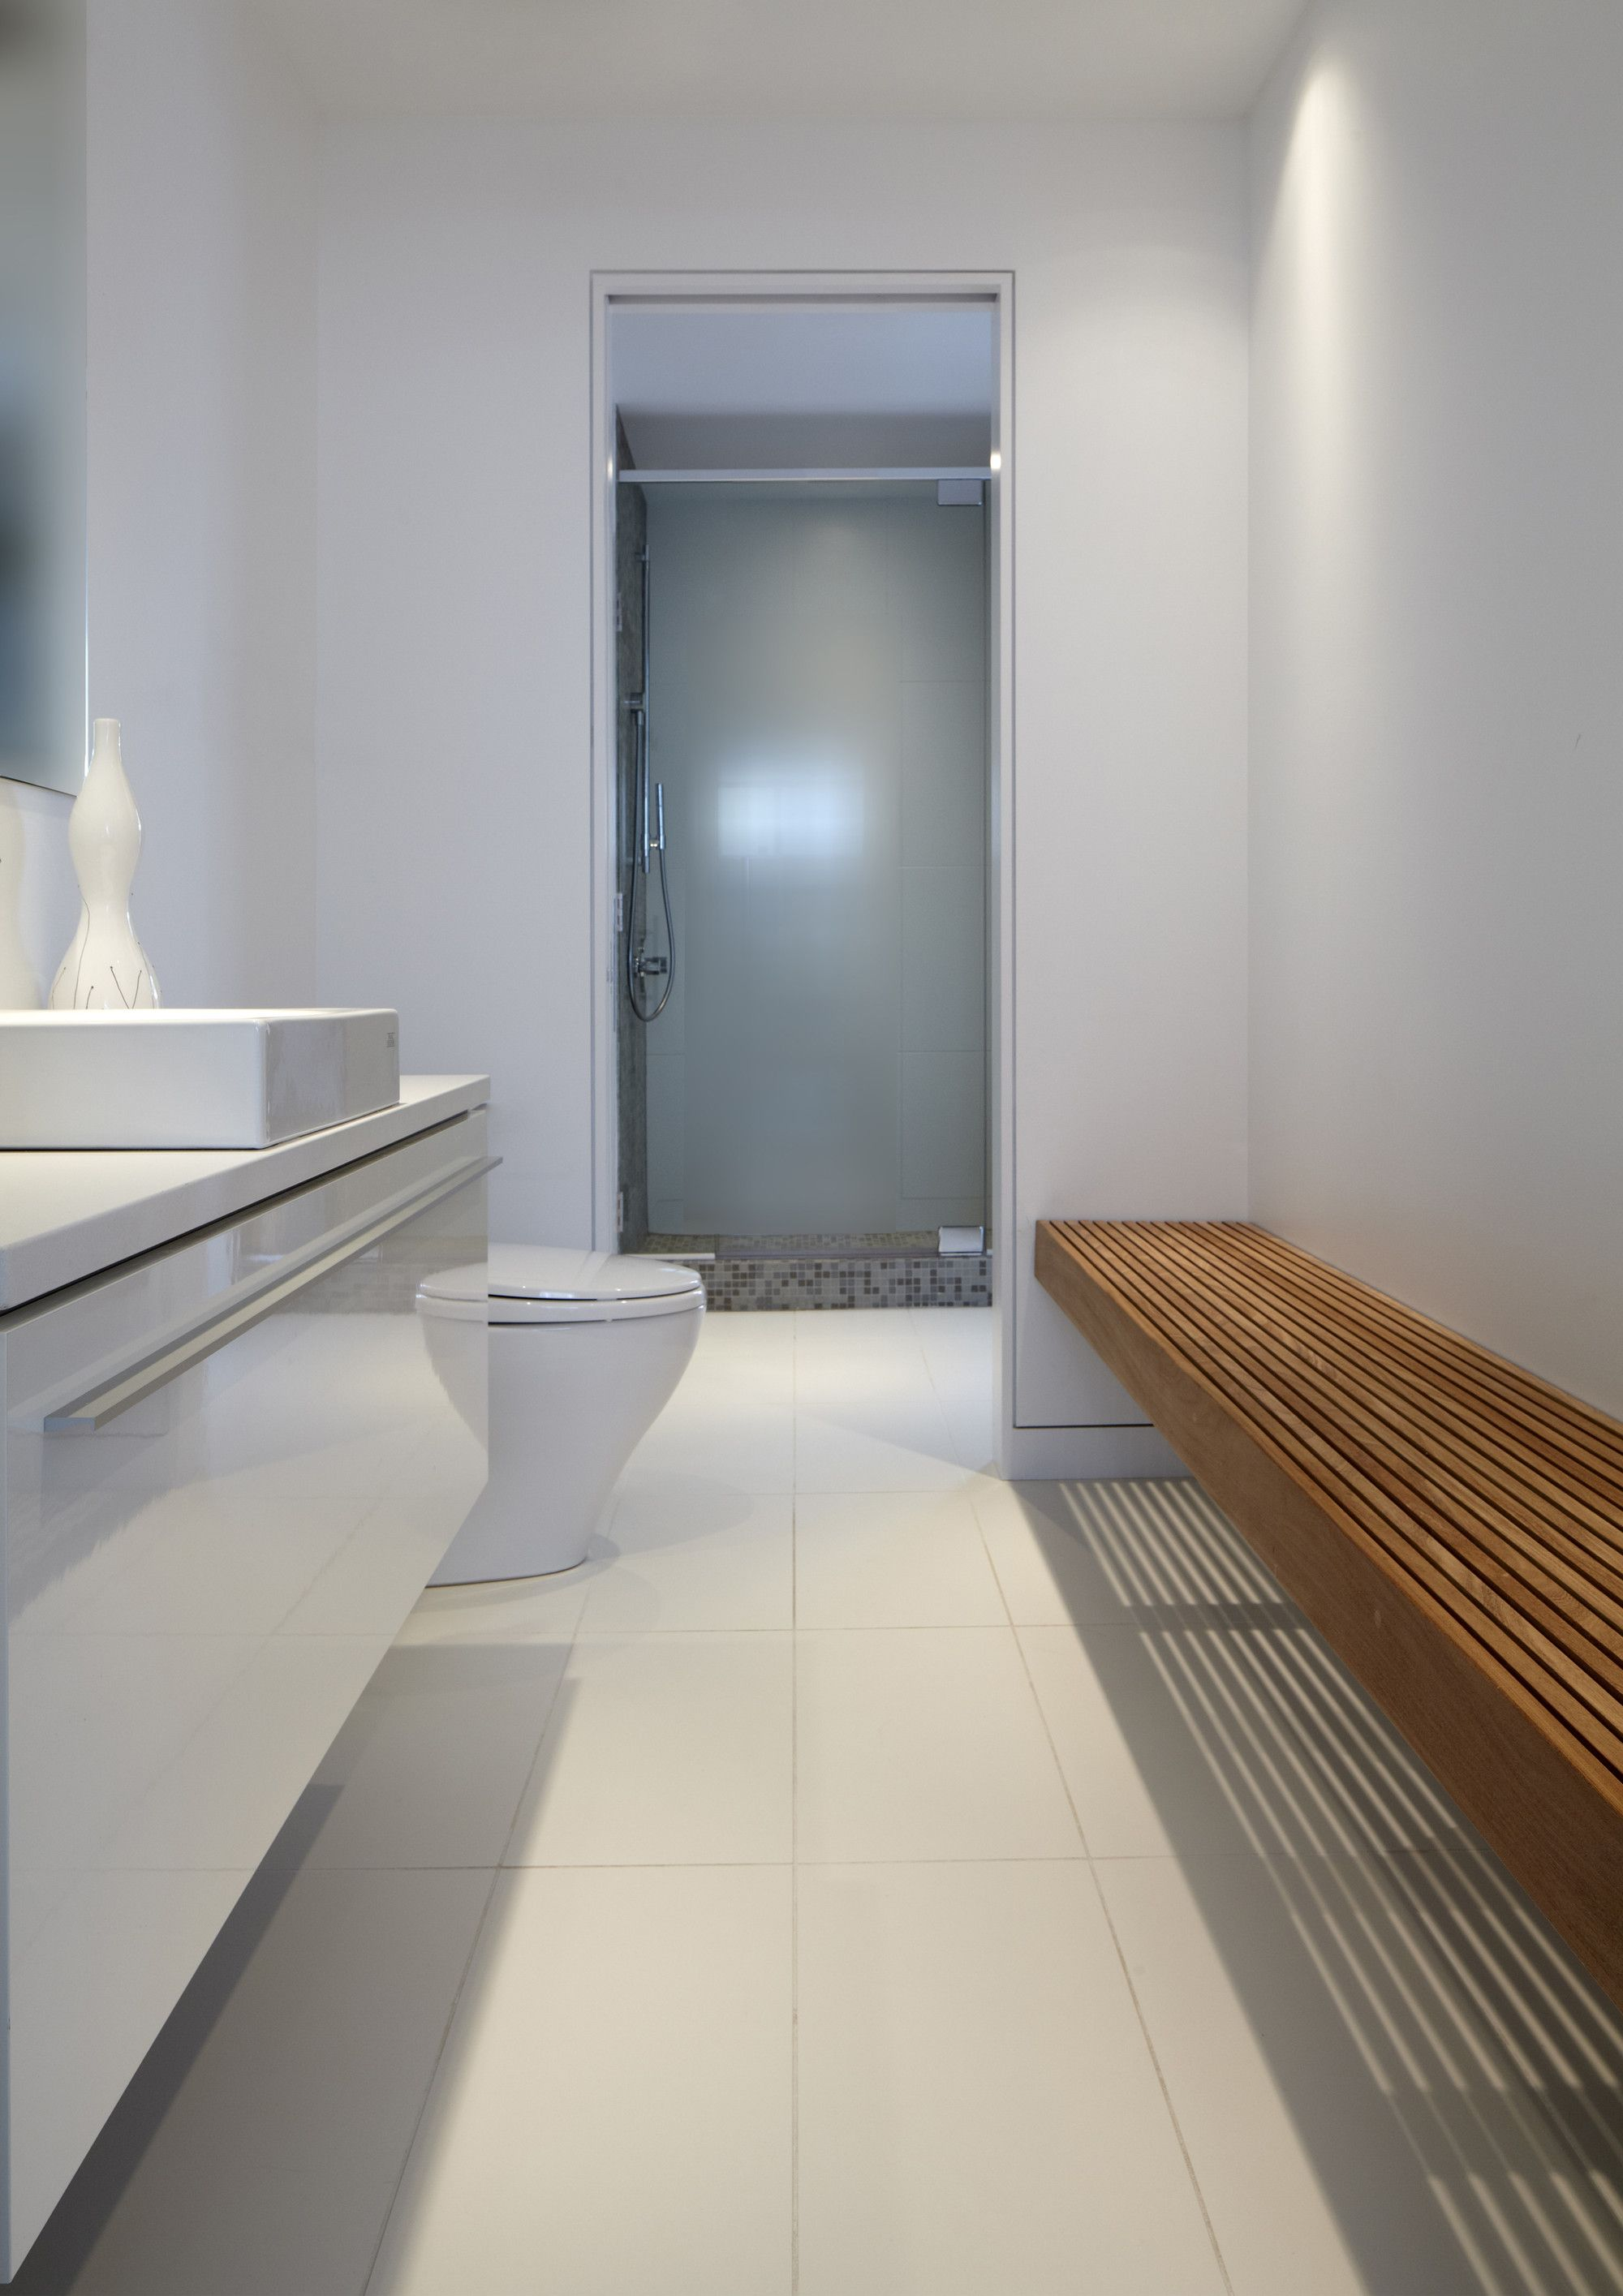 Bathroom Designs · Gallery Of Bucktown Three AD Submission / Studio Dwell  Architects   8